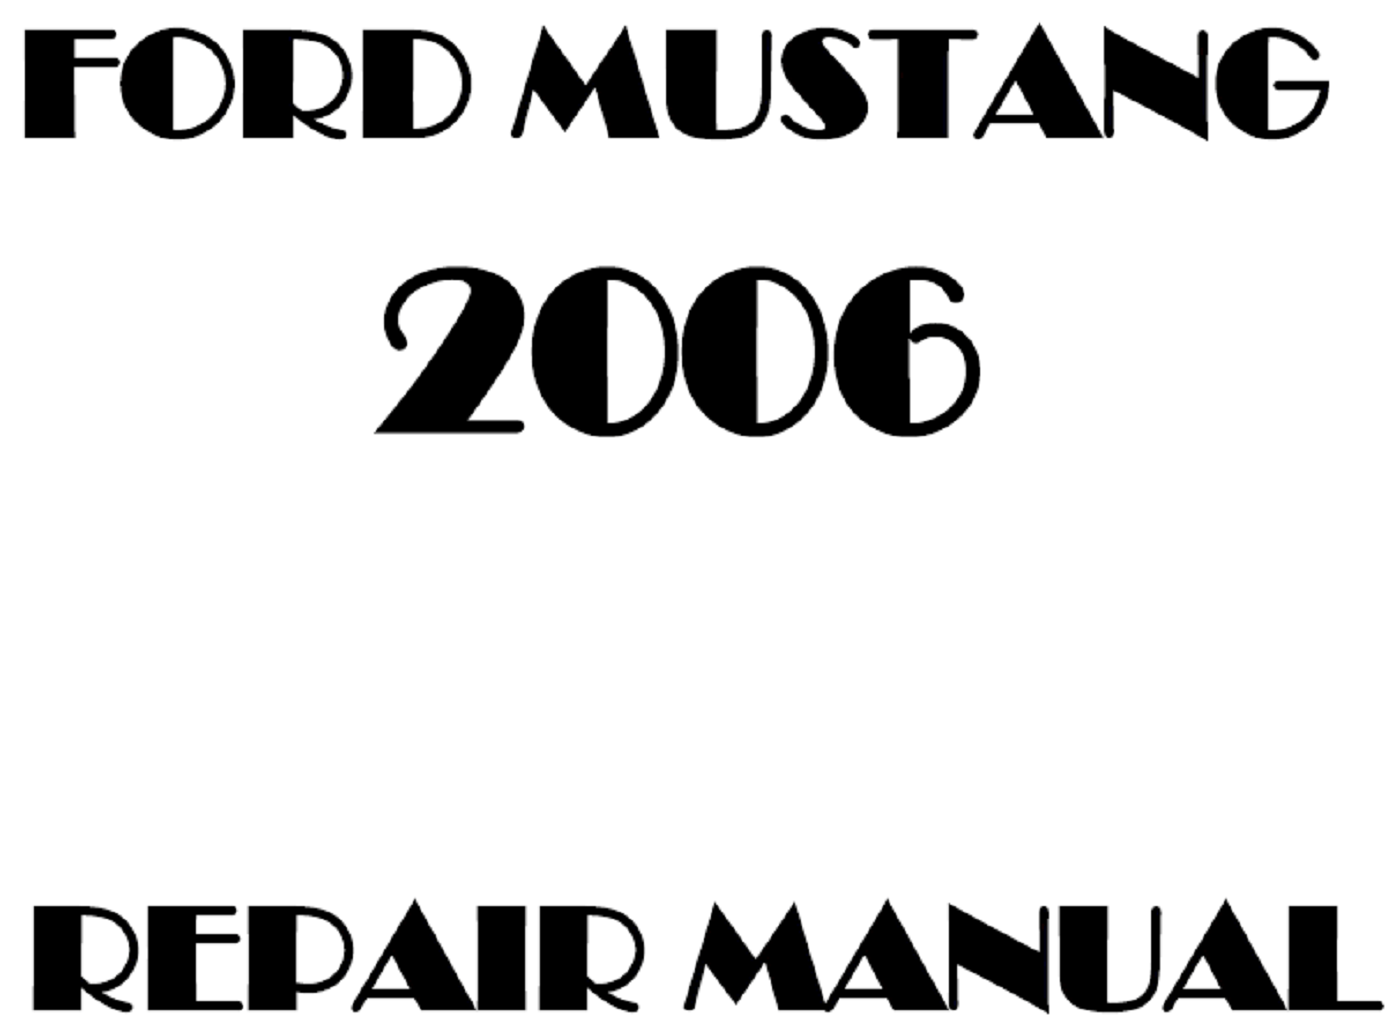 2006 Ford Mustang repair manual